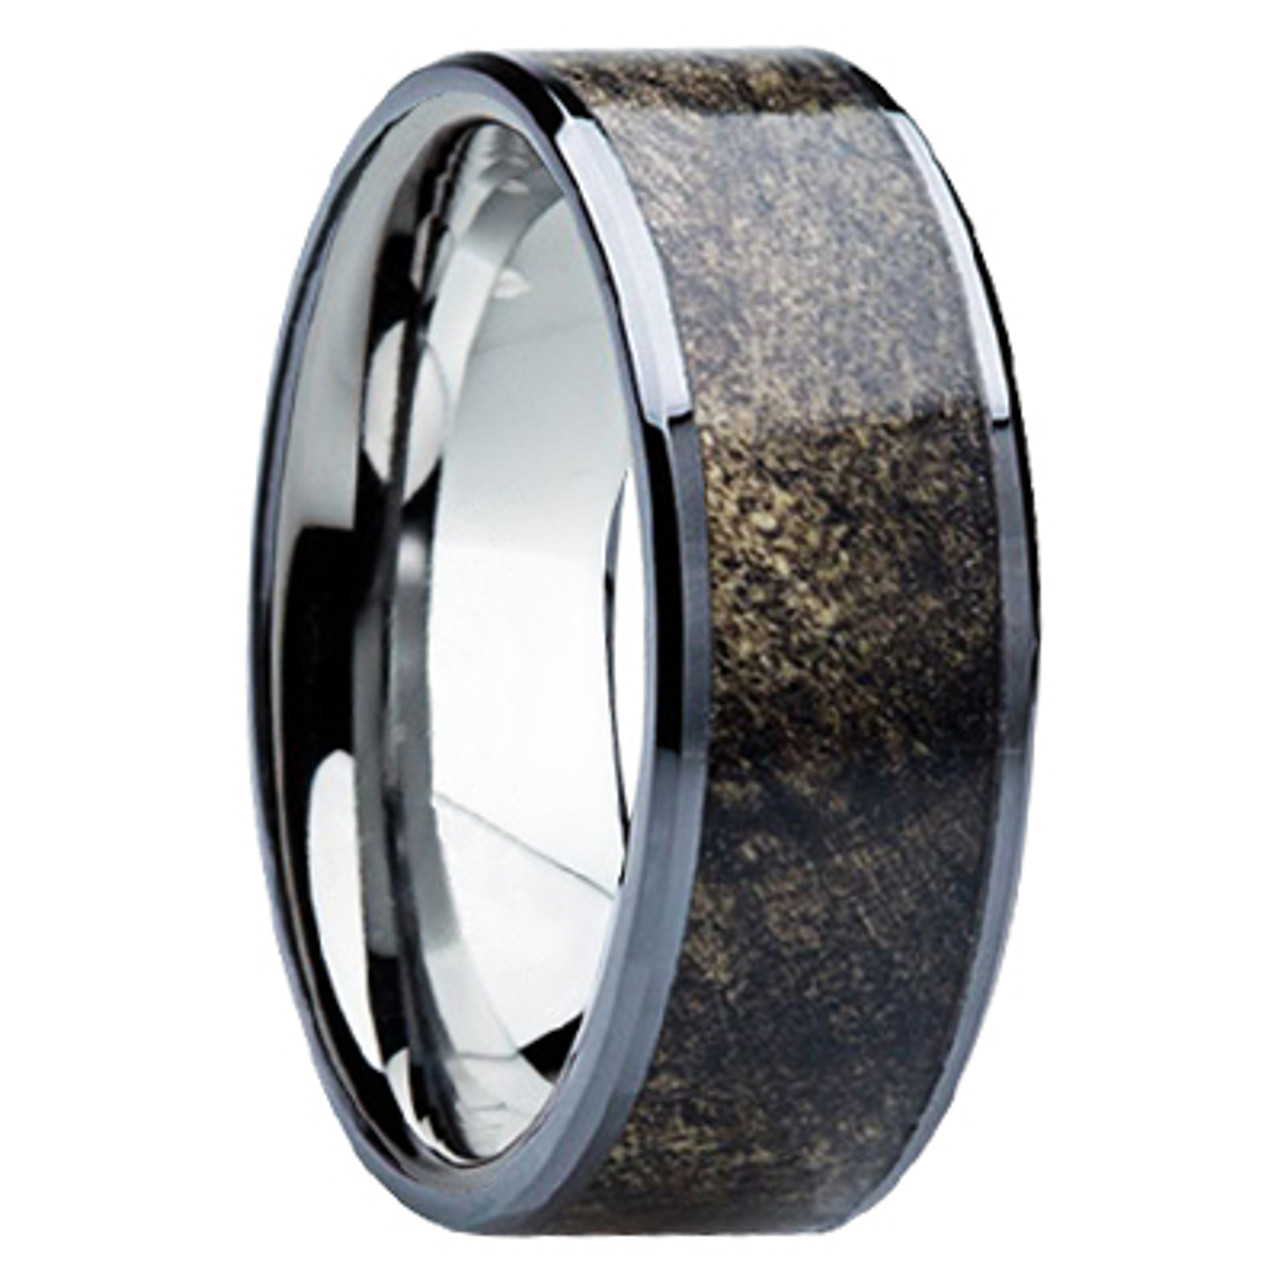 It is just a graphic of 42 mm Unique Mens Wedding Bands - Titanium & Buckeye Wood - B42M